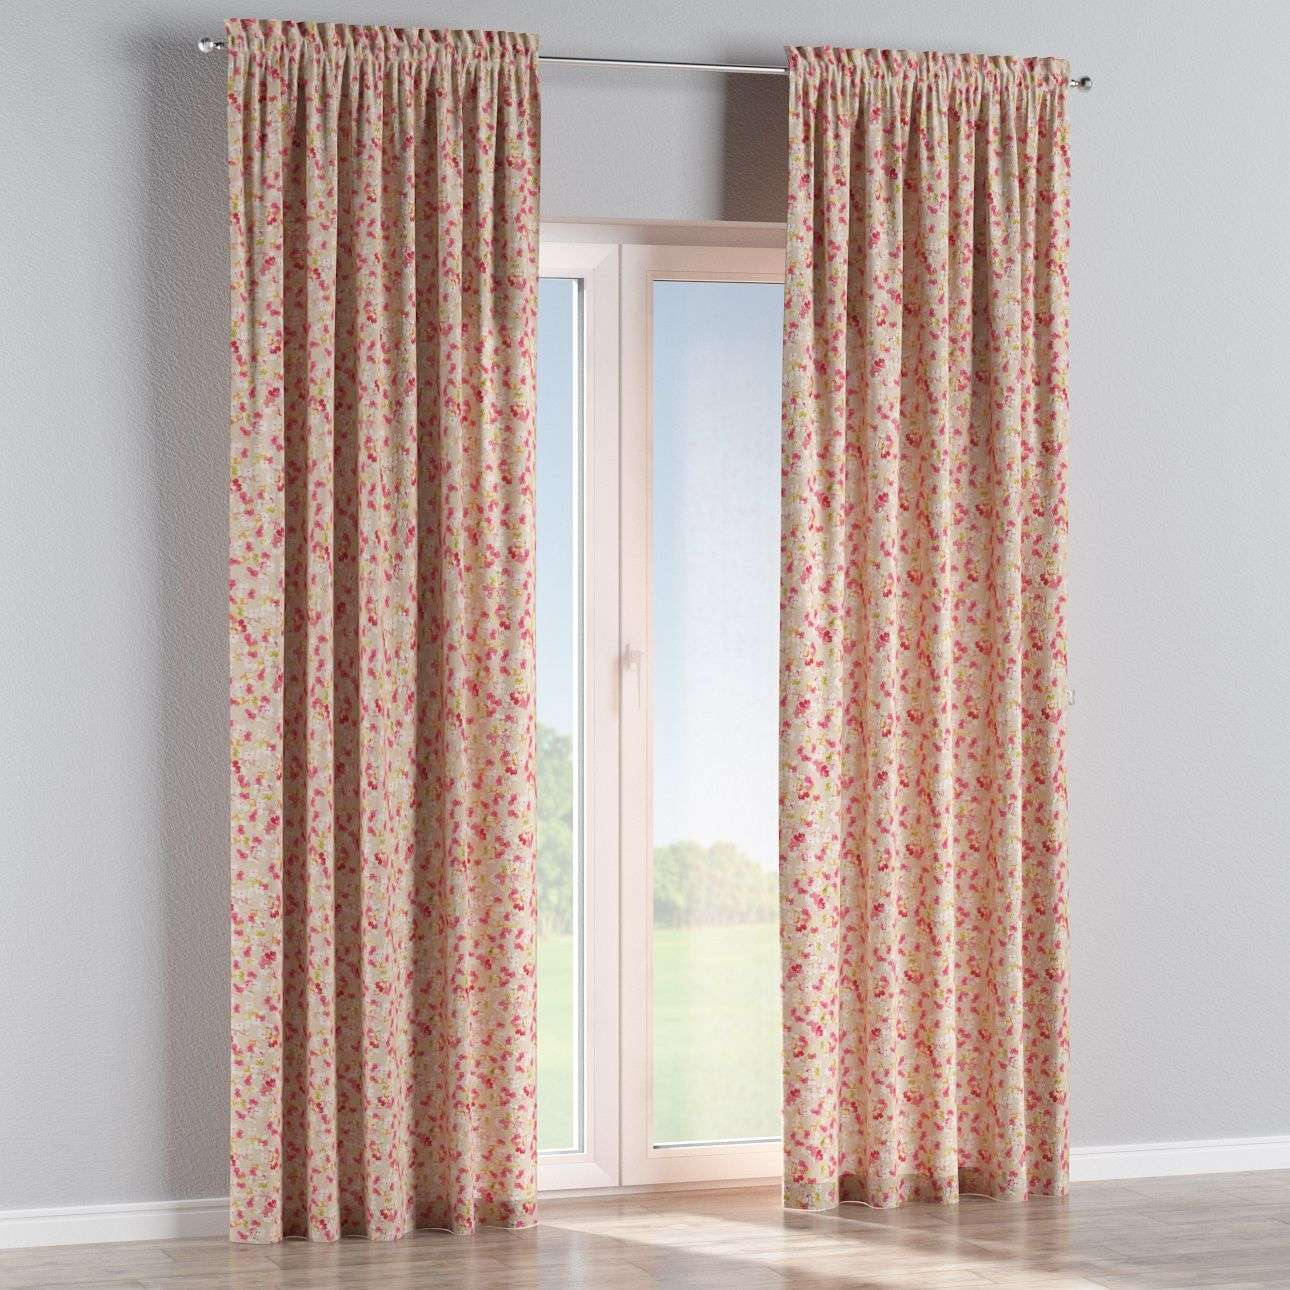 Slot and frill curtains in collection Londres, fabric: 140-47